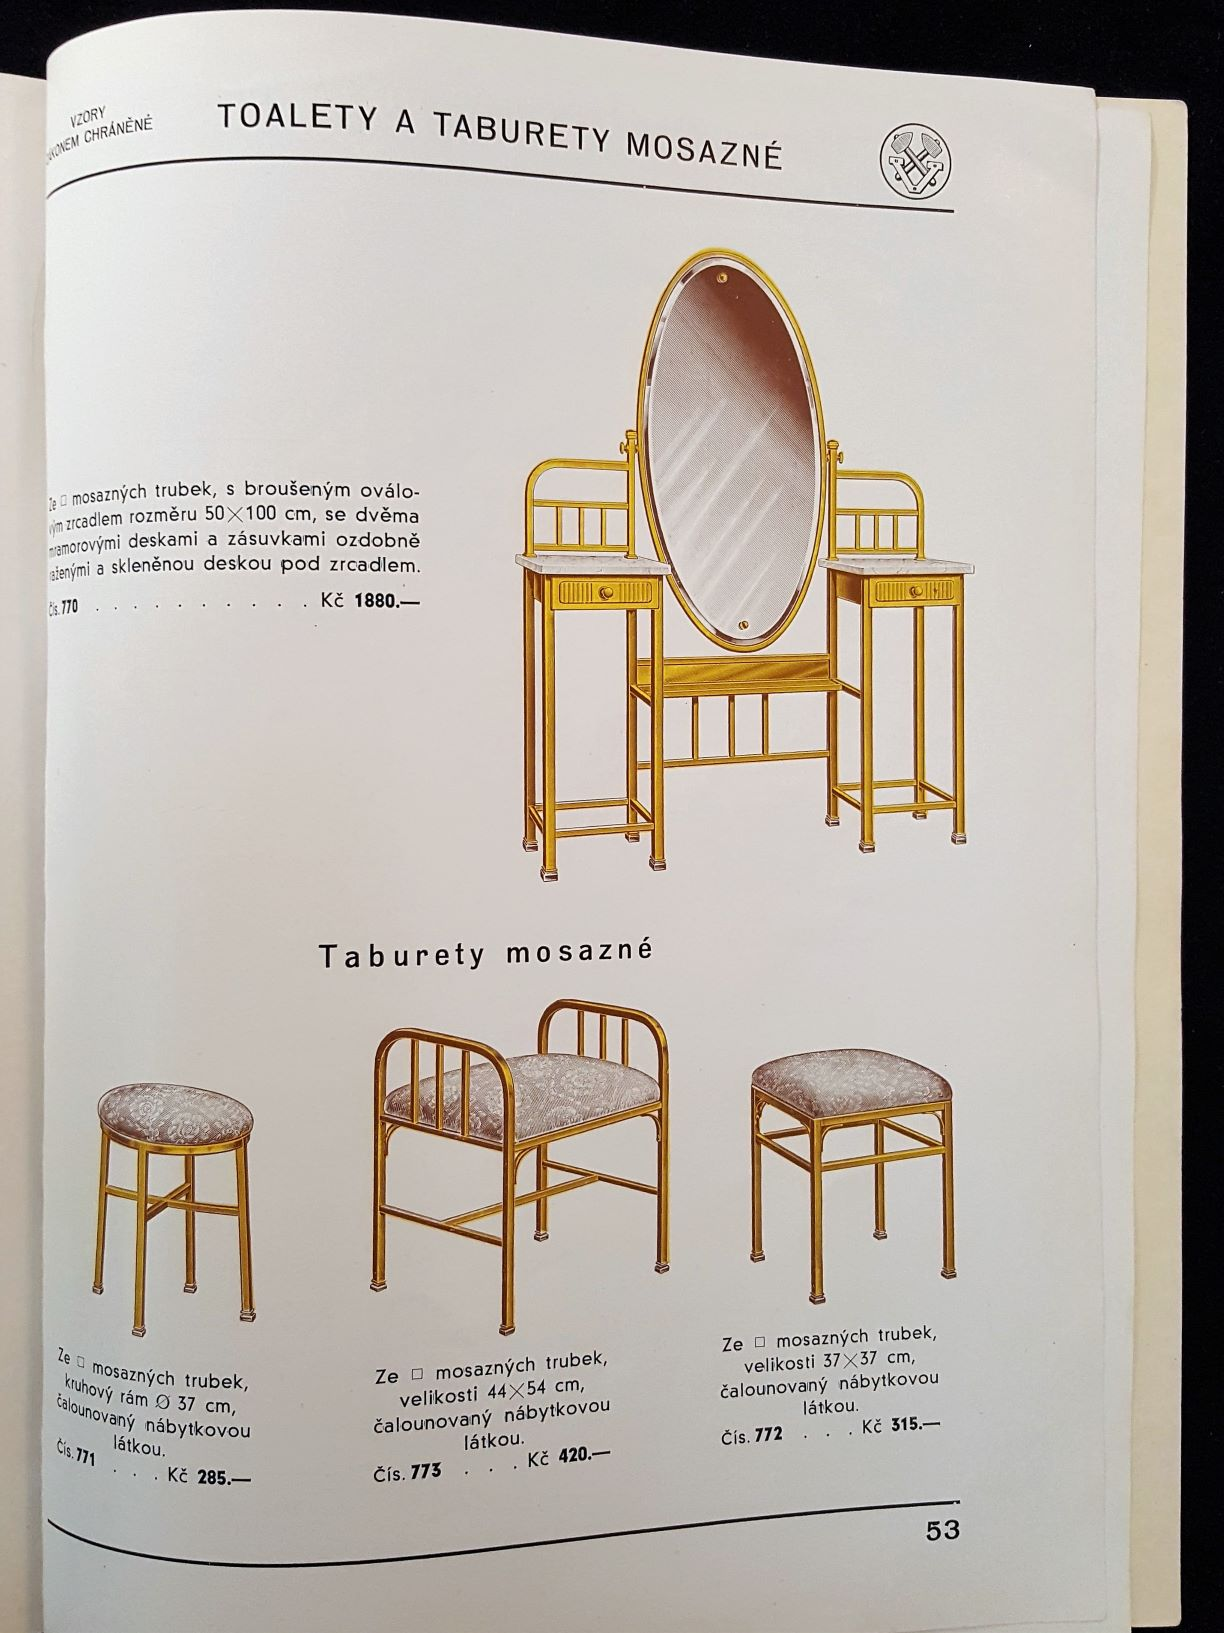 Image features tubular steel dressing tables with gold finishes.